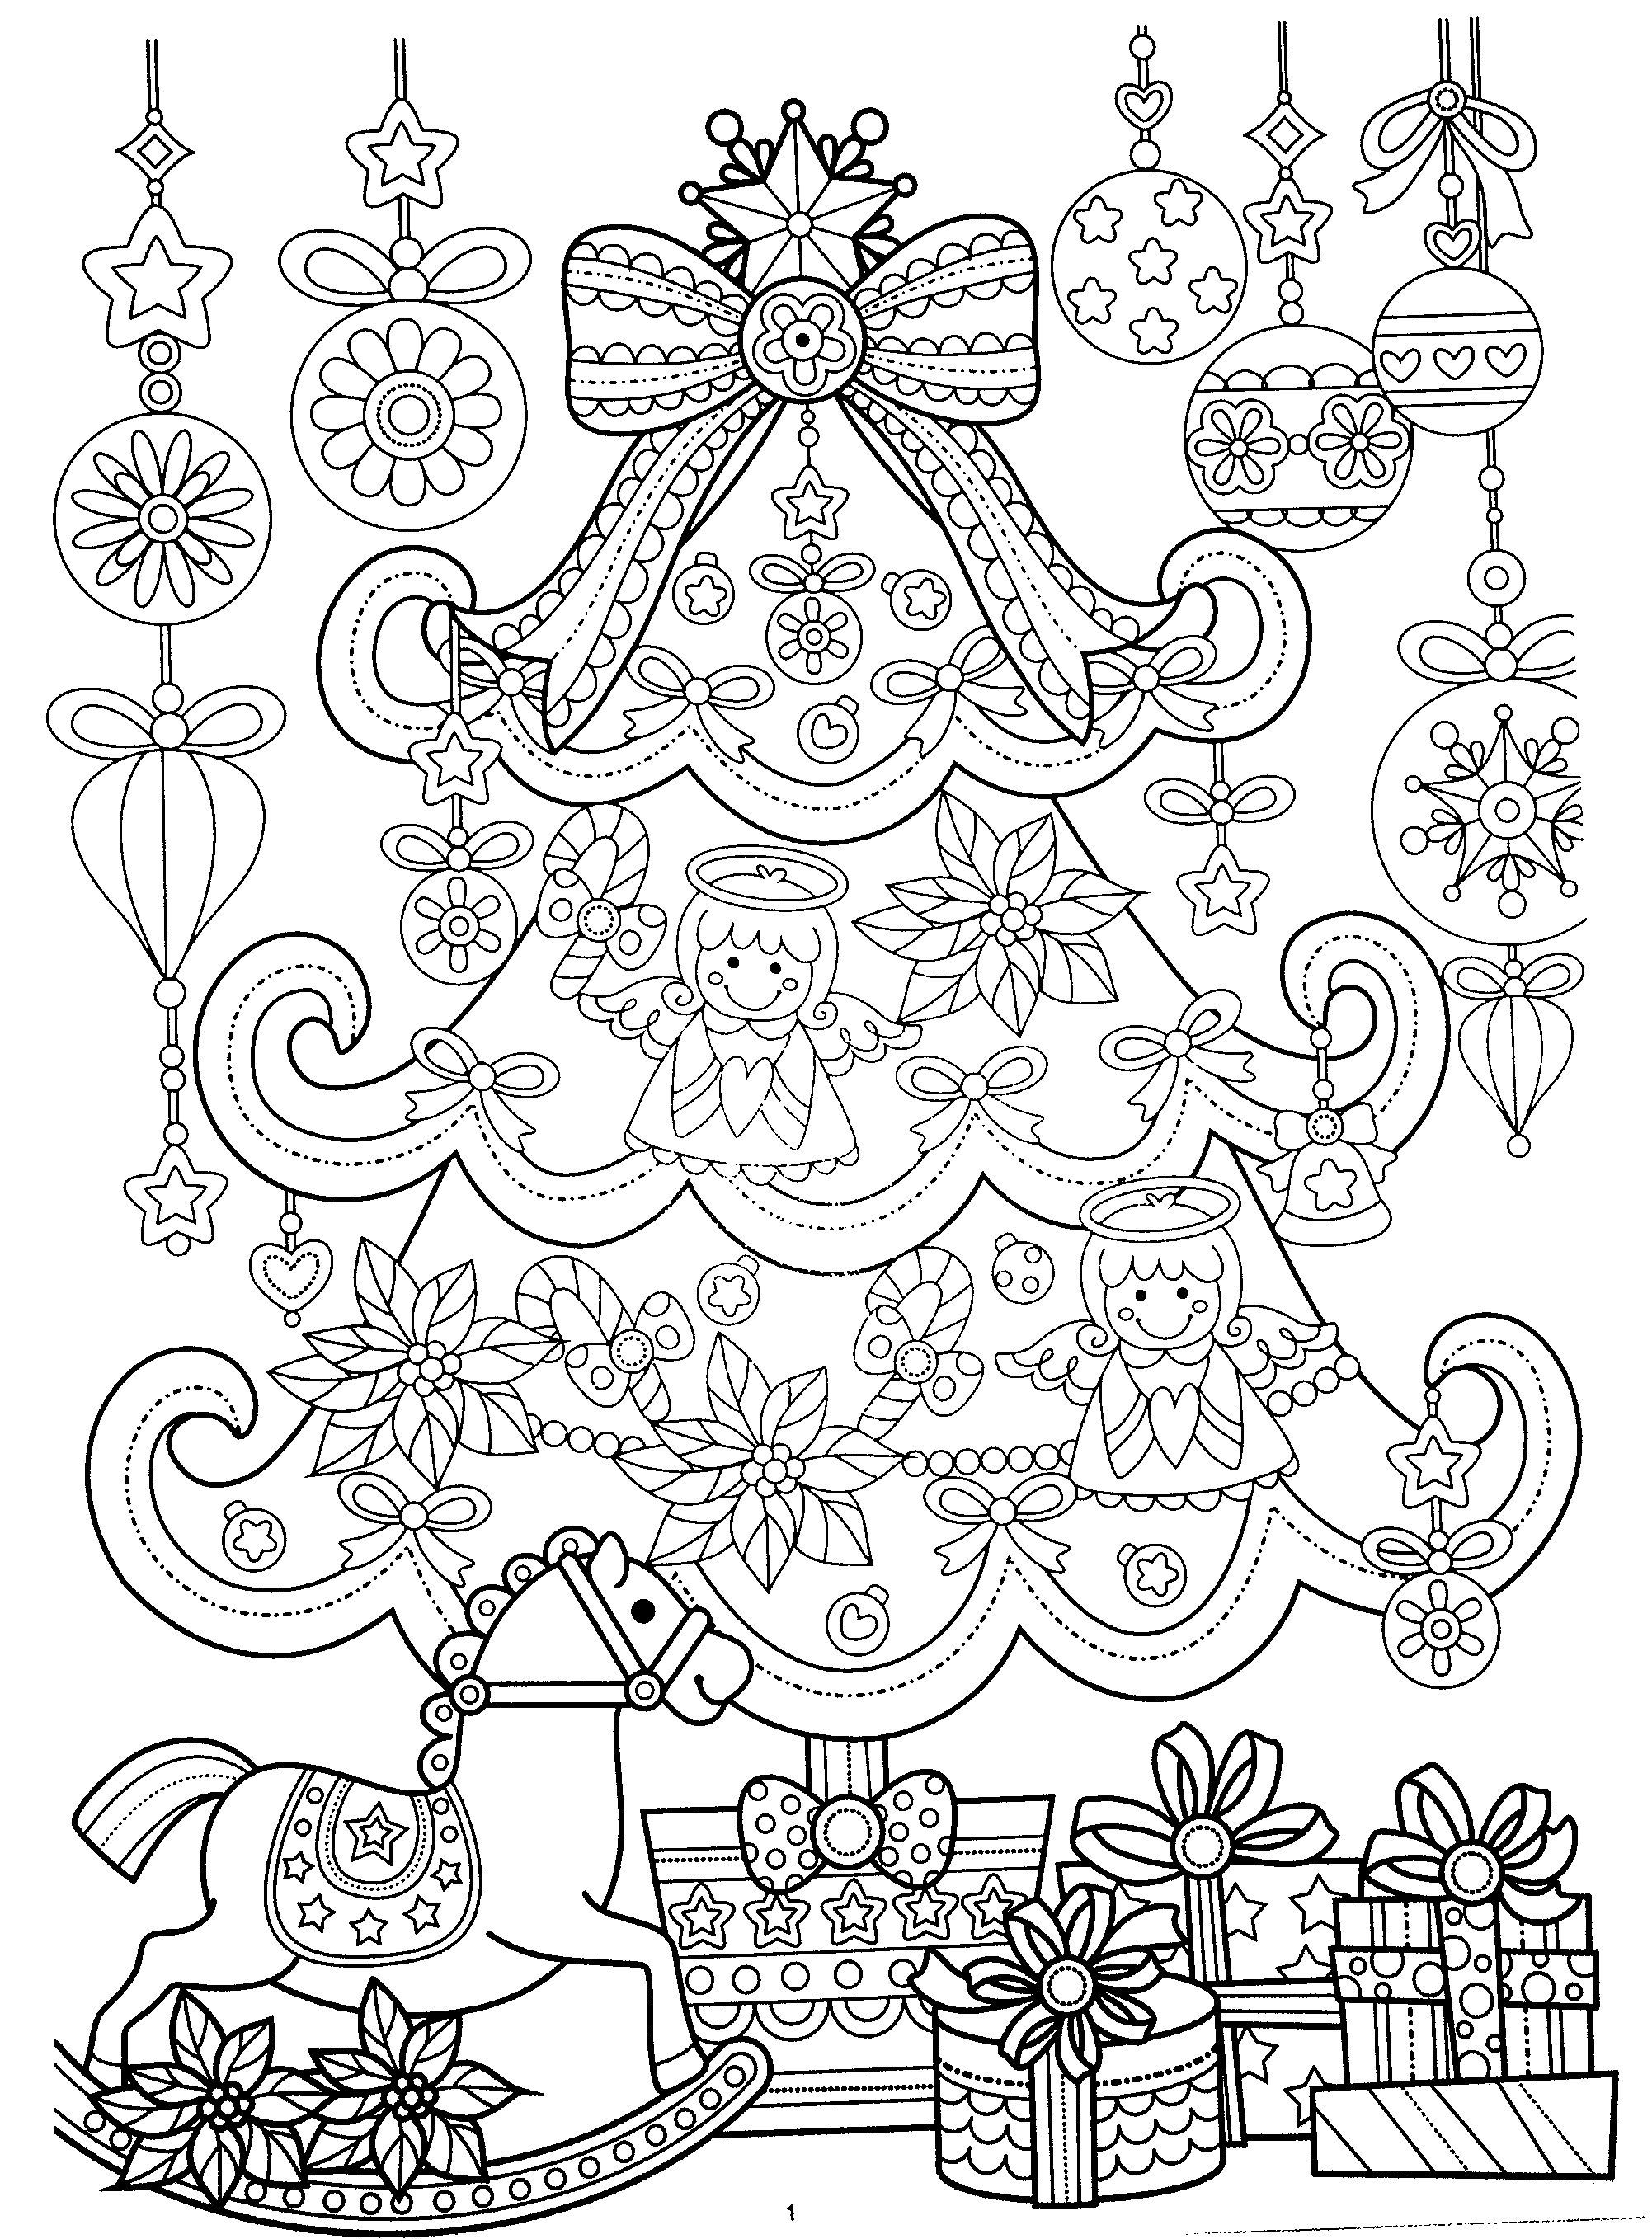 New Year Coloring Pages Christmas Coloring Pages New Year Coloring Pages Pumpkin Coloring Pages Christmas Coloring Pages